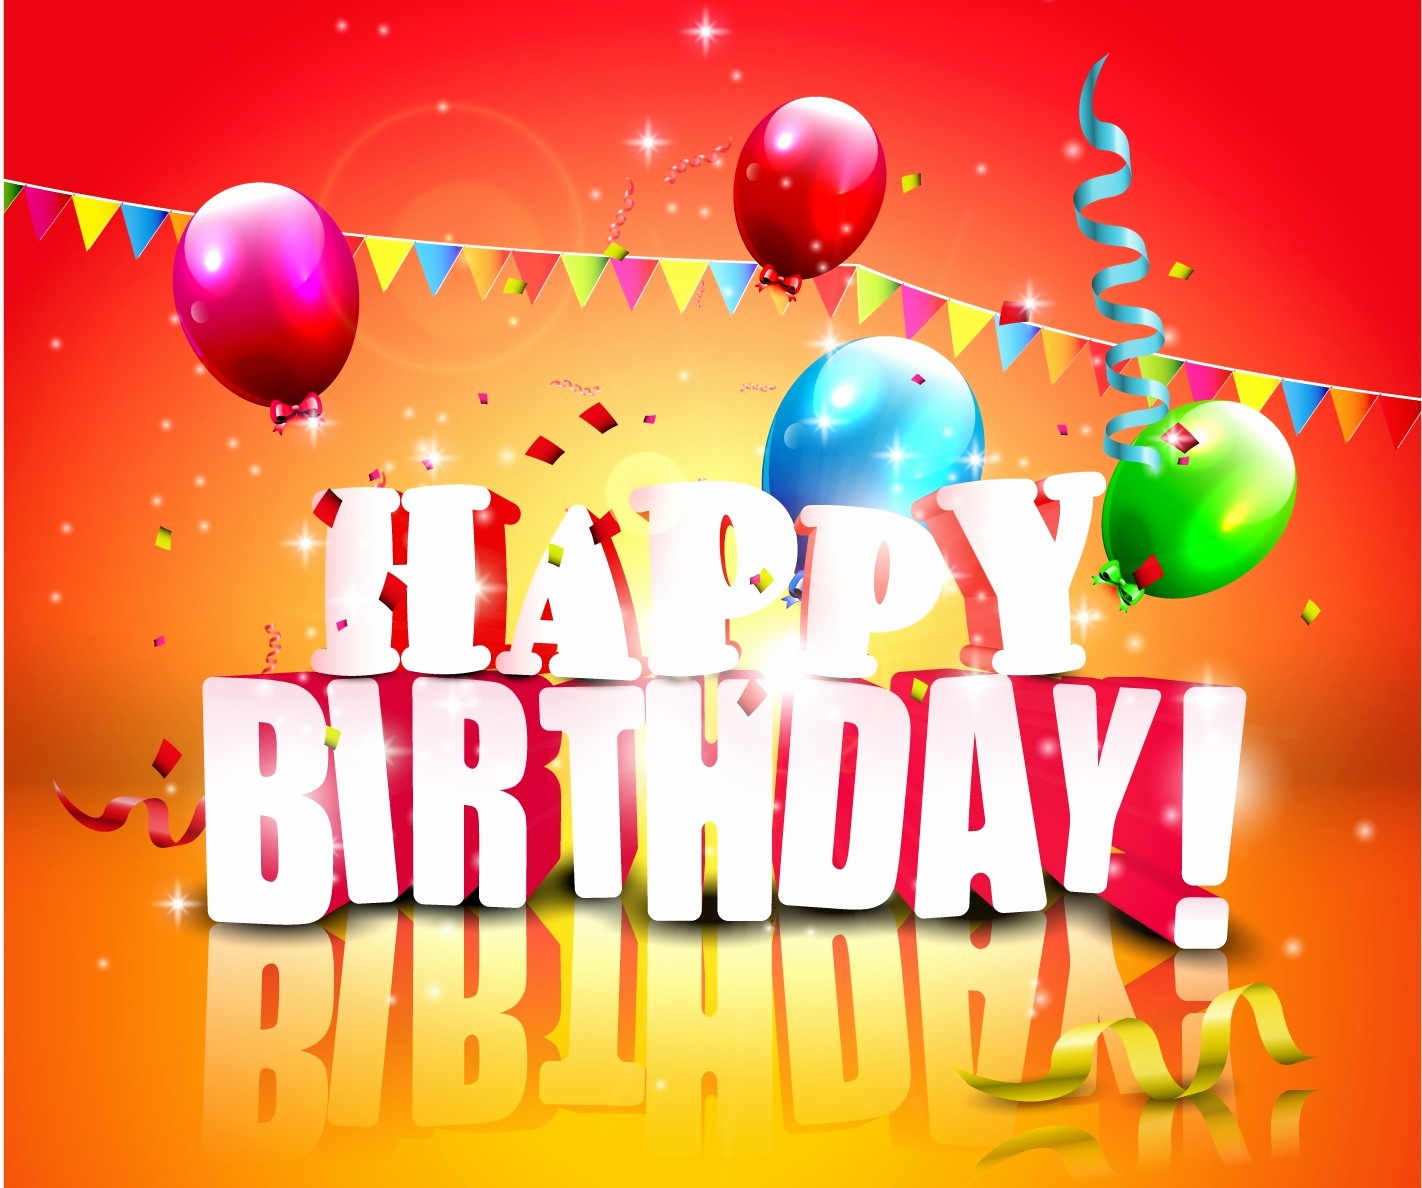 bday card greetings ; happy-birthday-wishes-card-for-facebook-beautiful-birthday-card-greeting-free-birthday-wish-card-free-birthday-of-happy-birthday-wishes-card-for-facebook